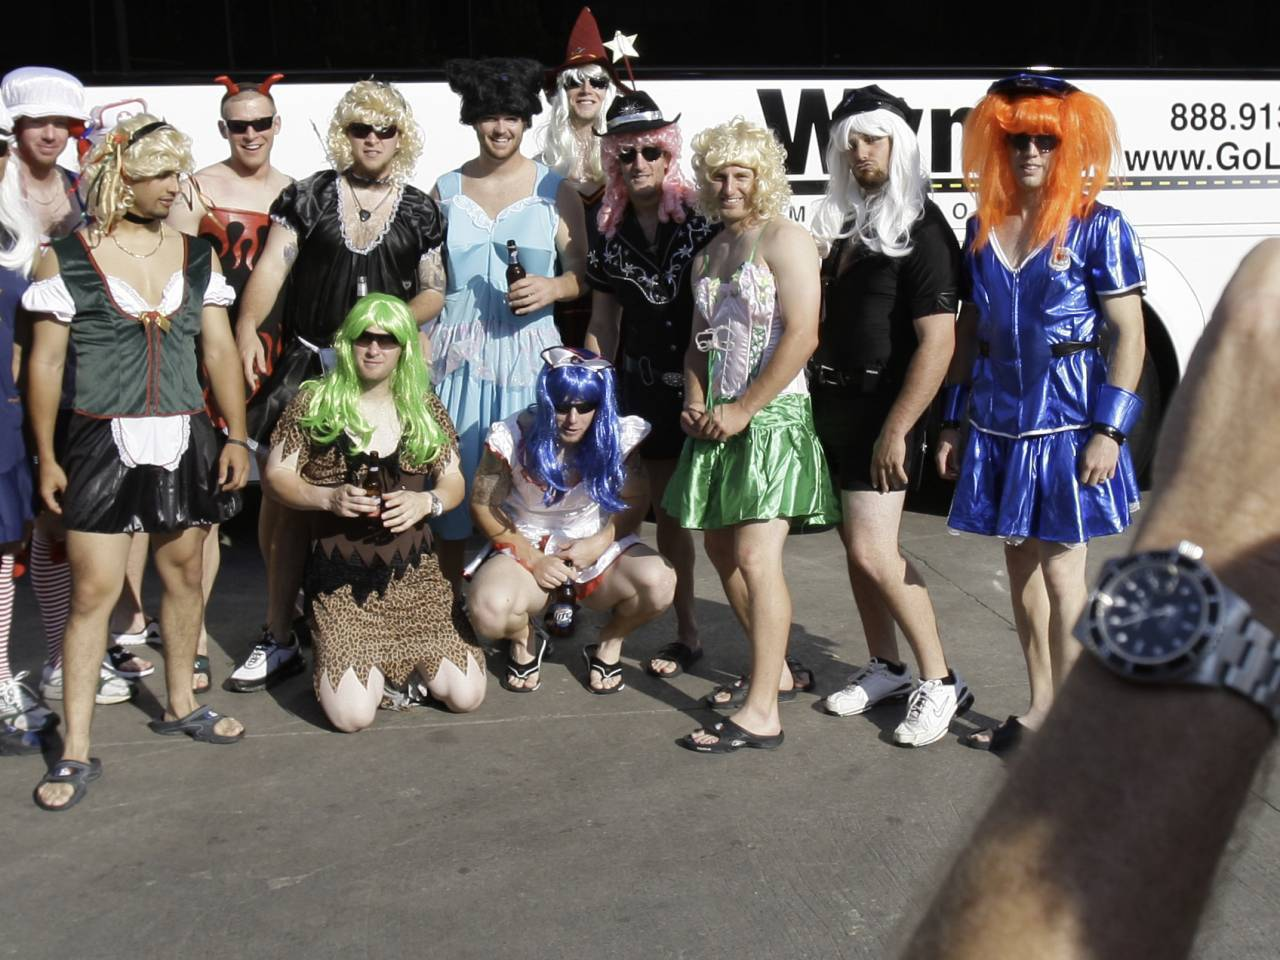 MLB rookie hazing rules ban dressing as women